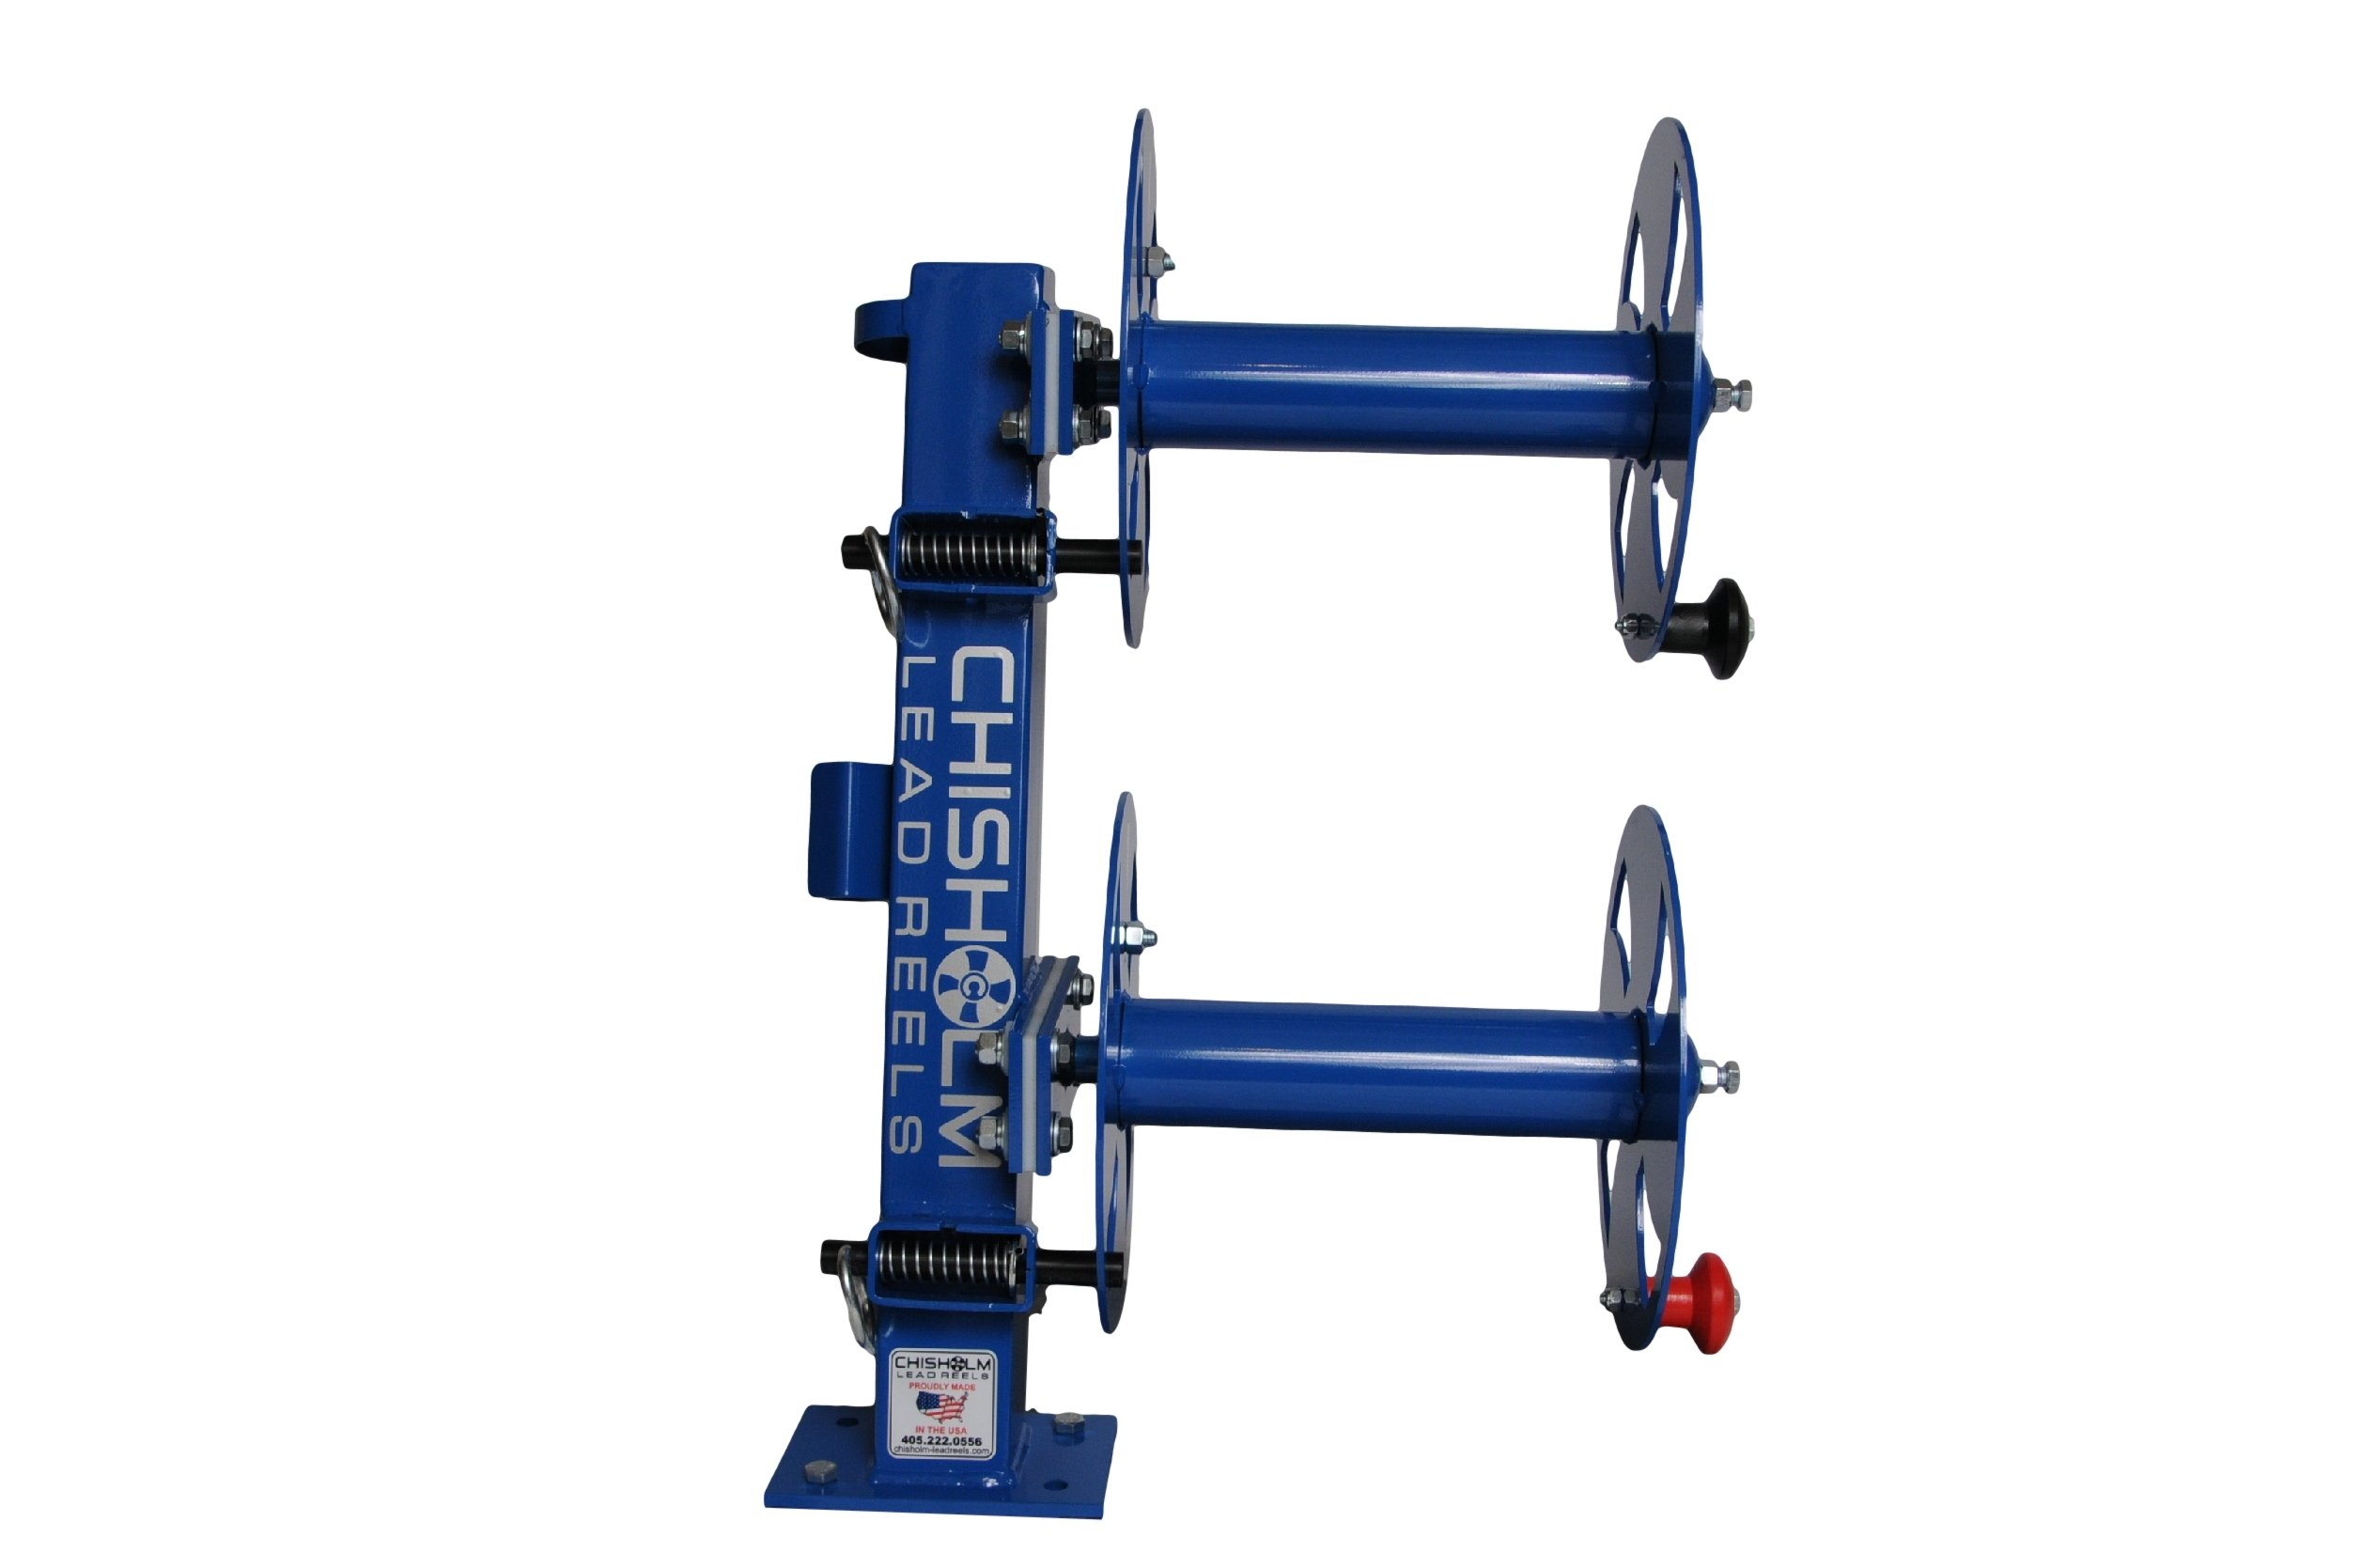 12'' BLUE Heavy-Duty FIXED-BASE Double Welding Cable Lead Reel Holds up to 200' of 1/0 Cable